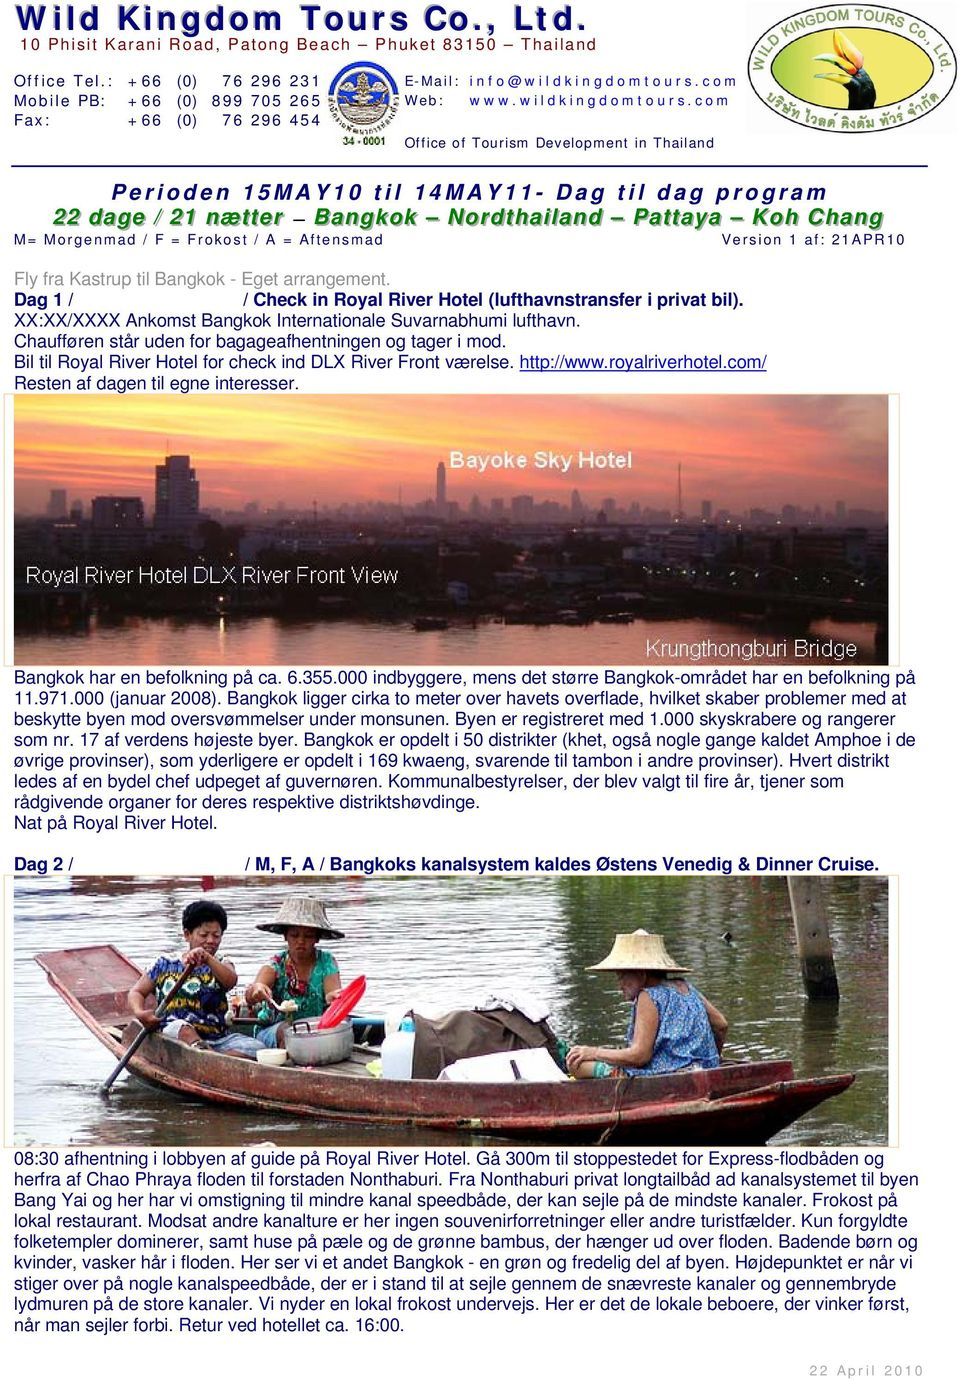 com Fax: +66 (0) 76 296 454 Office of Tourism Development in Thailand Perioden 15MAY10 til 14MAY11- Dag til dag program 22 22 dd aa gg ee / 22 11 nnæ t t ee rr B aa nn gg kk oo kk N oo rr dd t hh aa